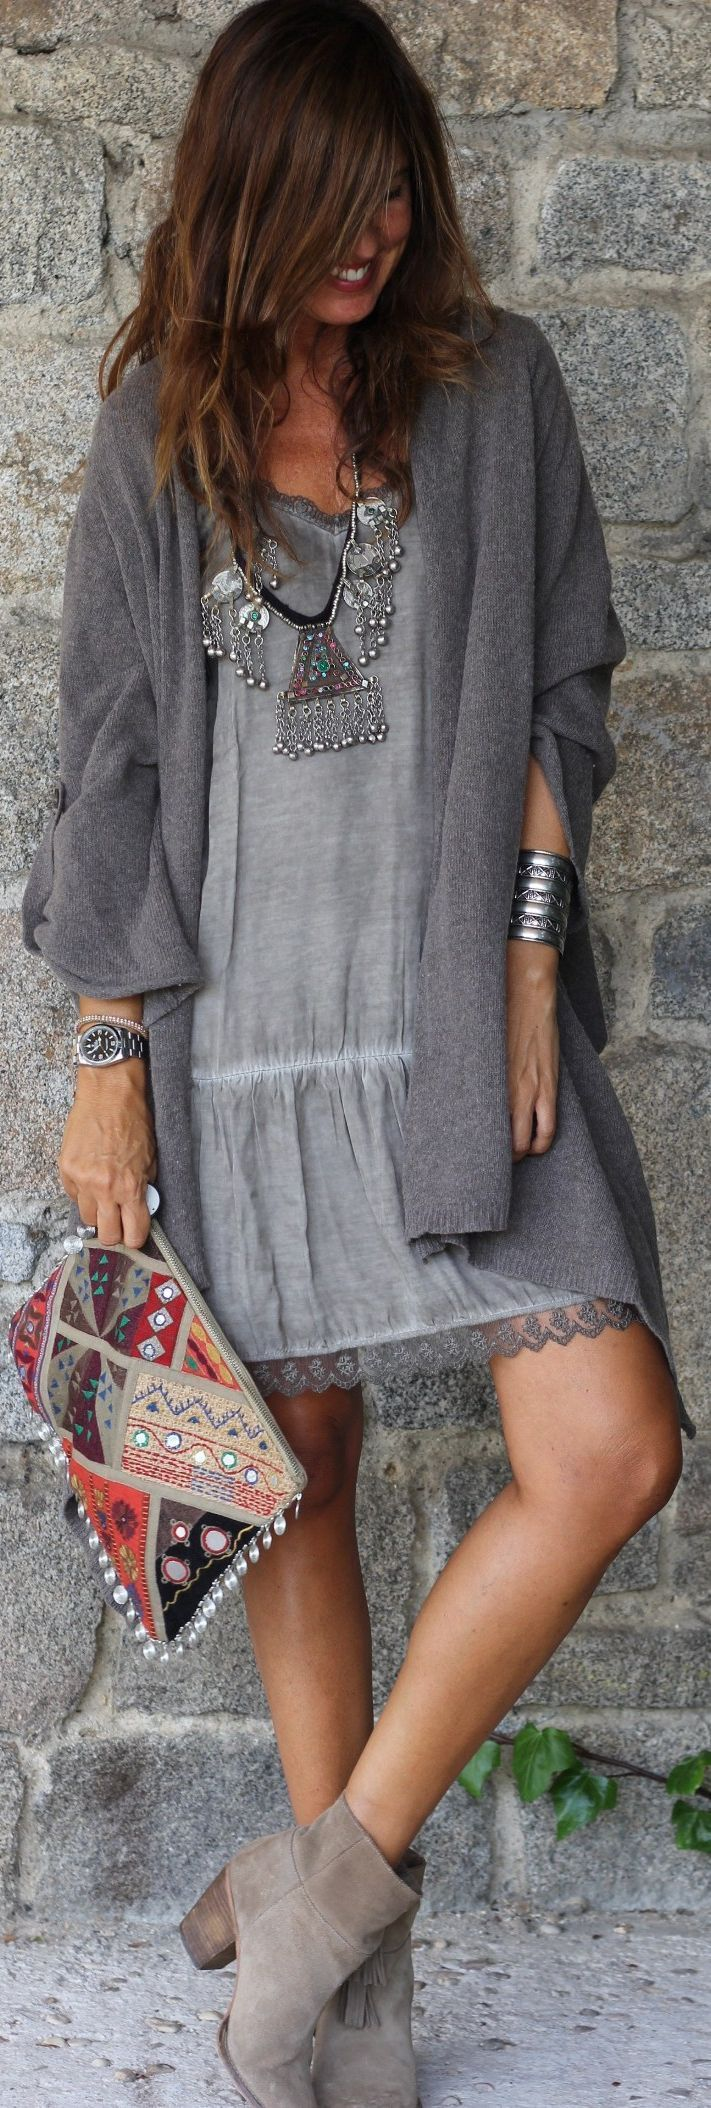 Grey Boho Shift Mini Dress Bag Booties and Accessories Look from Latest boho outfits.